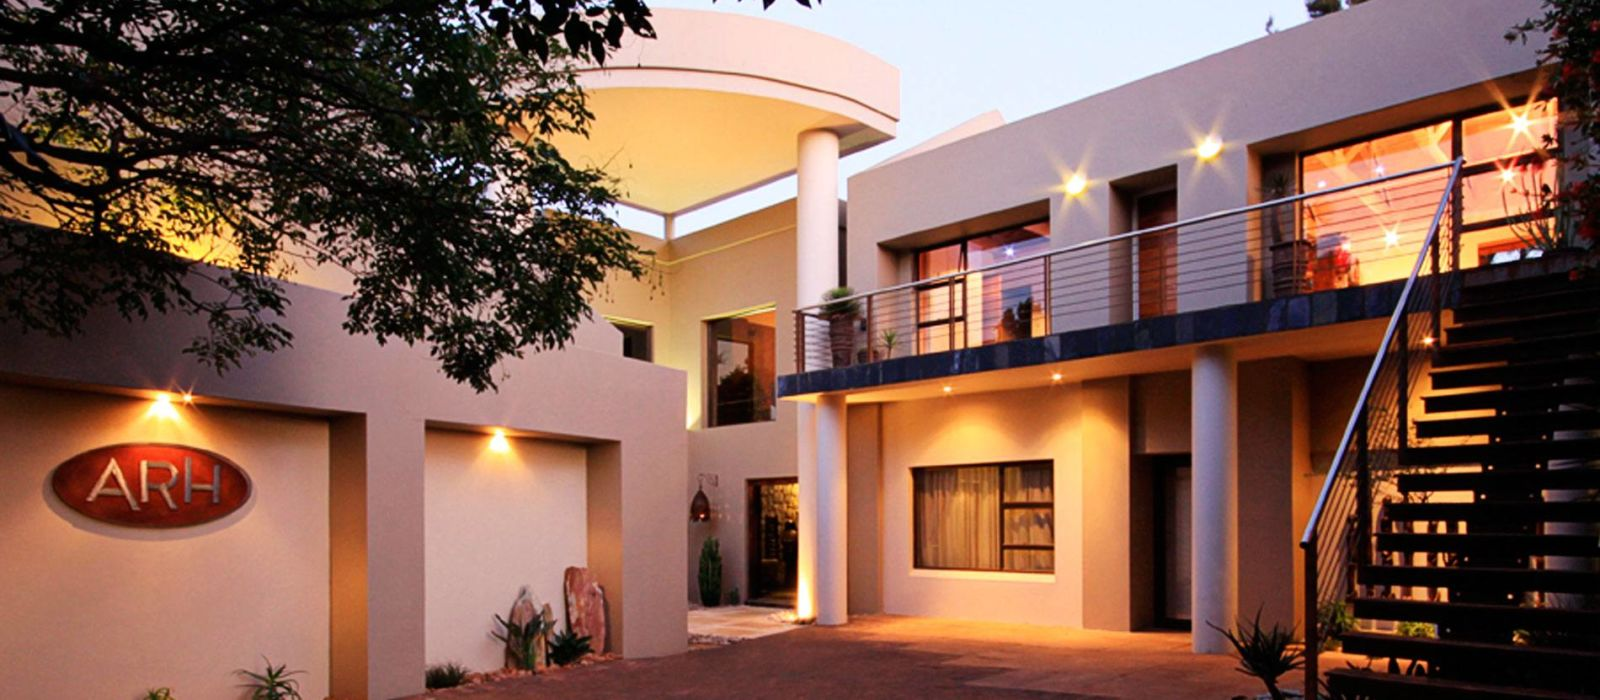 Hotel African Rock  South Africa